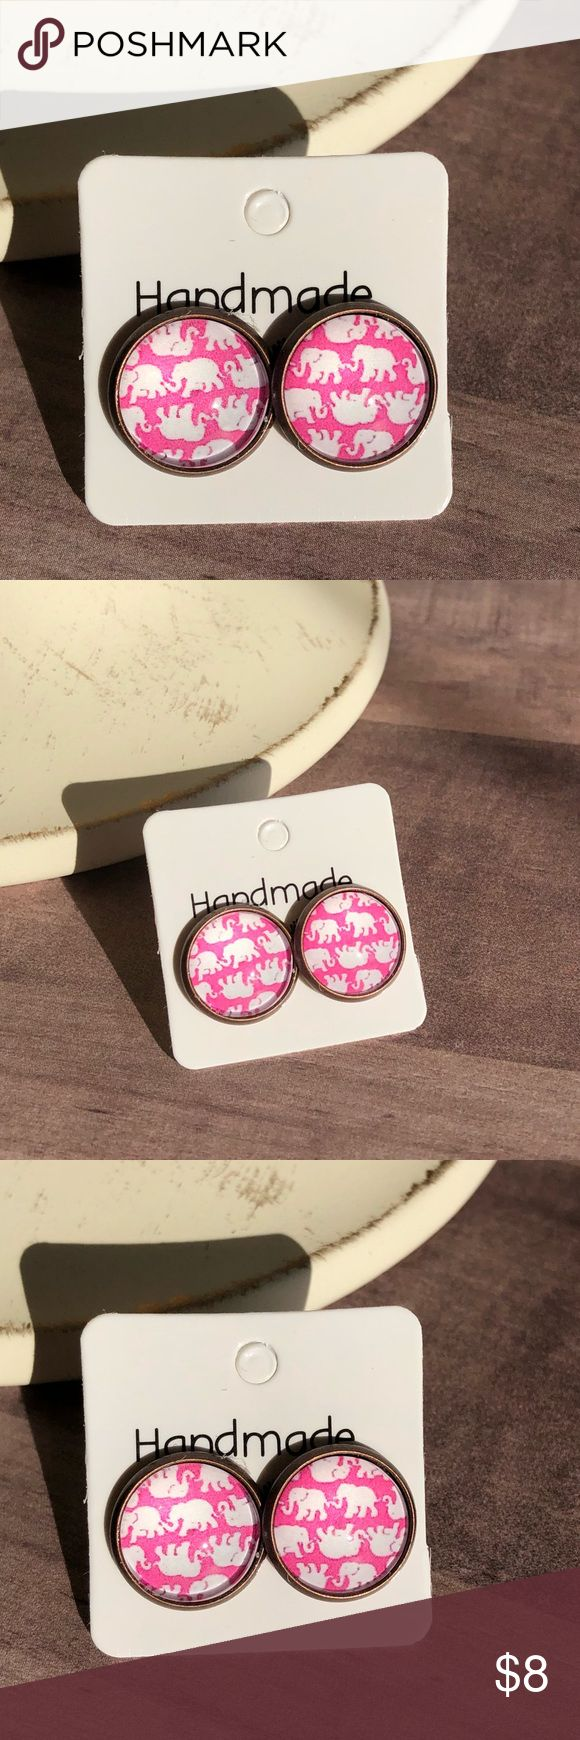 "🆕Boho Pink Elephant Bronze Stud Earrings! New, Handmade by Me! Approx. 1/2"" Diameter, 12mm; Weight 8g; Adorable Pink with White Elephants Boho Glass Stud Earrings on a Vintage Bronze Post Back; 📸These are my pics of the actual item you will receive!  ▶️Part of 3 for $15 Deal! Bundle & Save! • Glass Cabochon Stud Earrings for pierced ears • Nickel, Lead & Cadmium Free  *NO TRADES *Price is FIRM as Listed!  *Sales are Final-Please Read Descriptions! gallery_of_gems Jewelry Earrings"